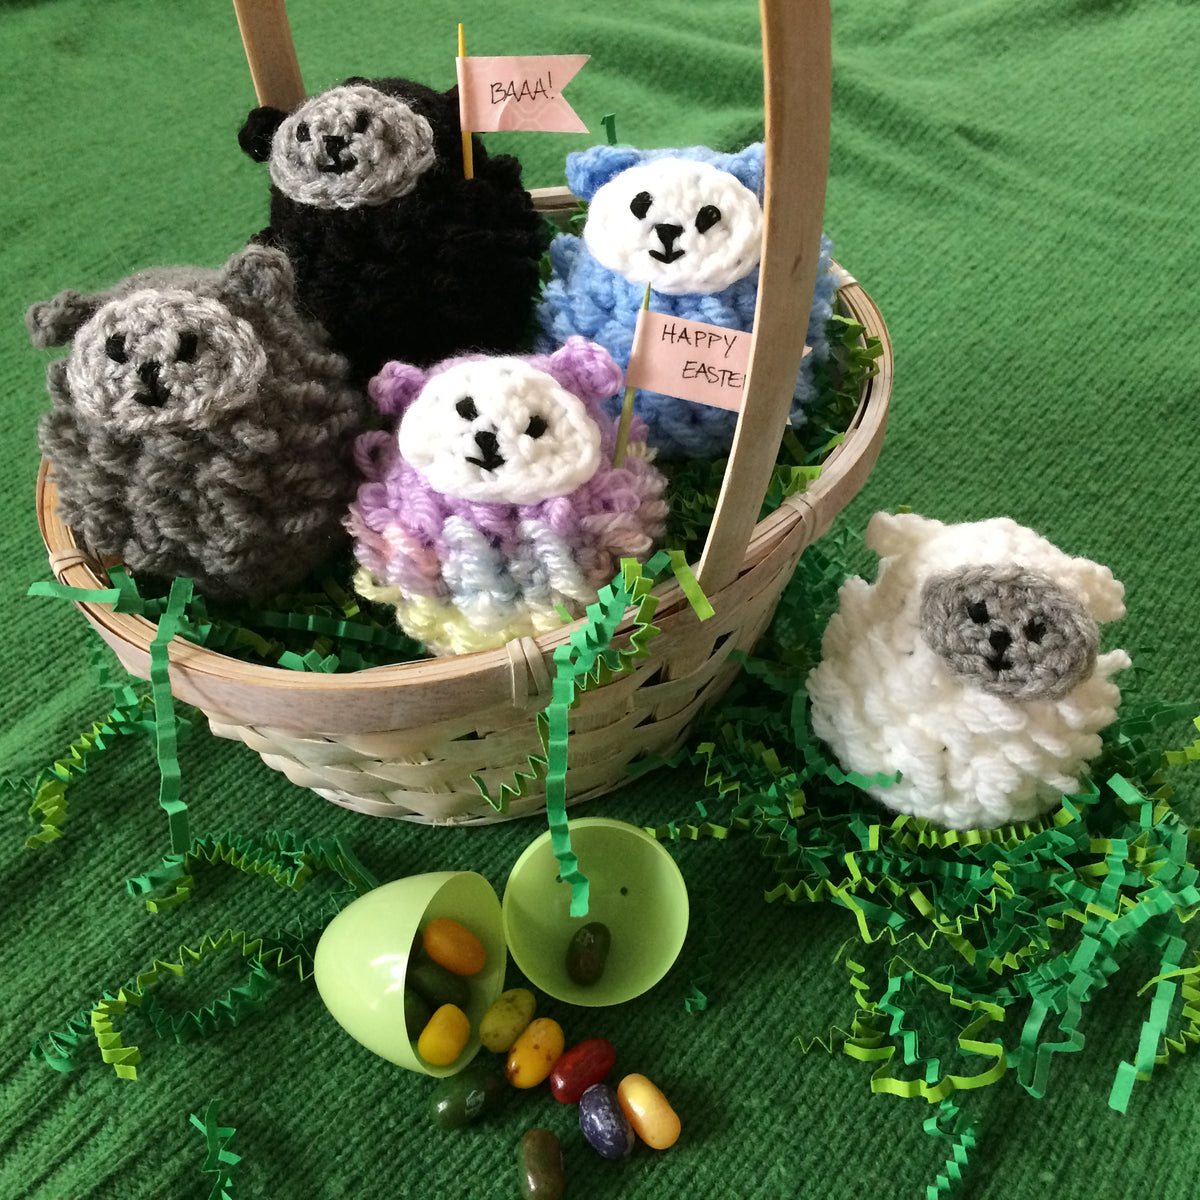 Wooly Sheep Crocheted Egg Covers CROCHET Class - One Session - March 24, 2018 10:00-12:00